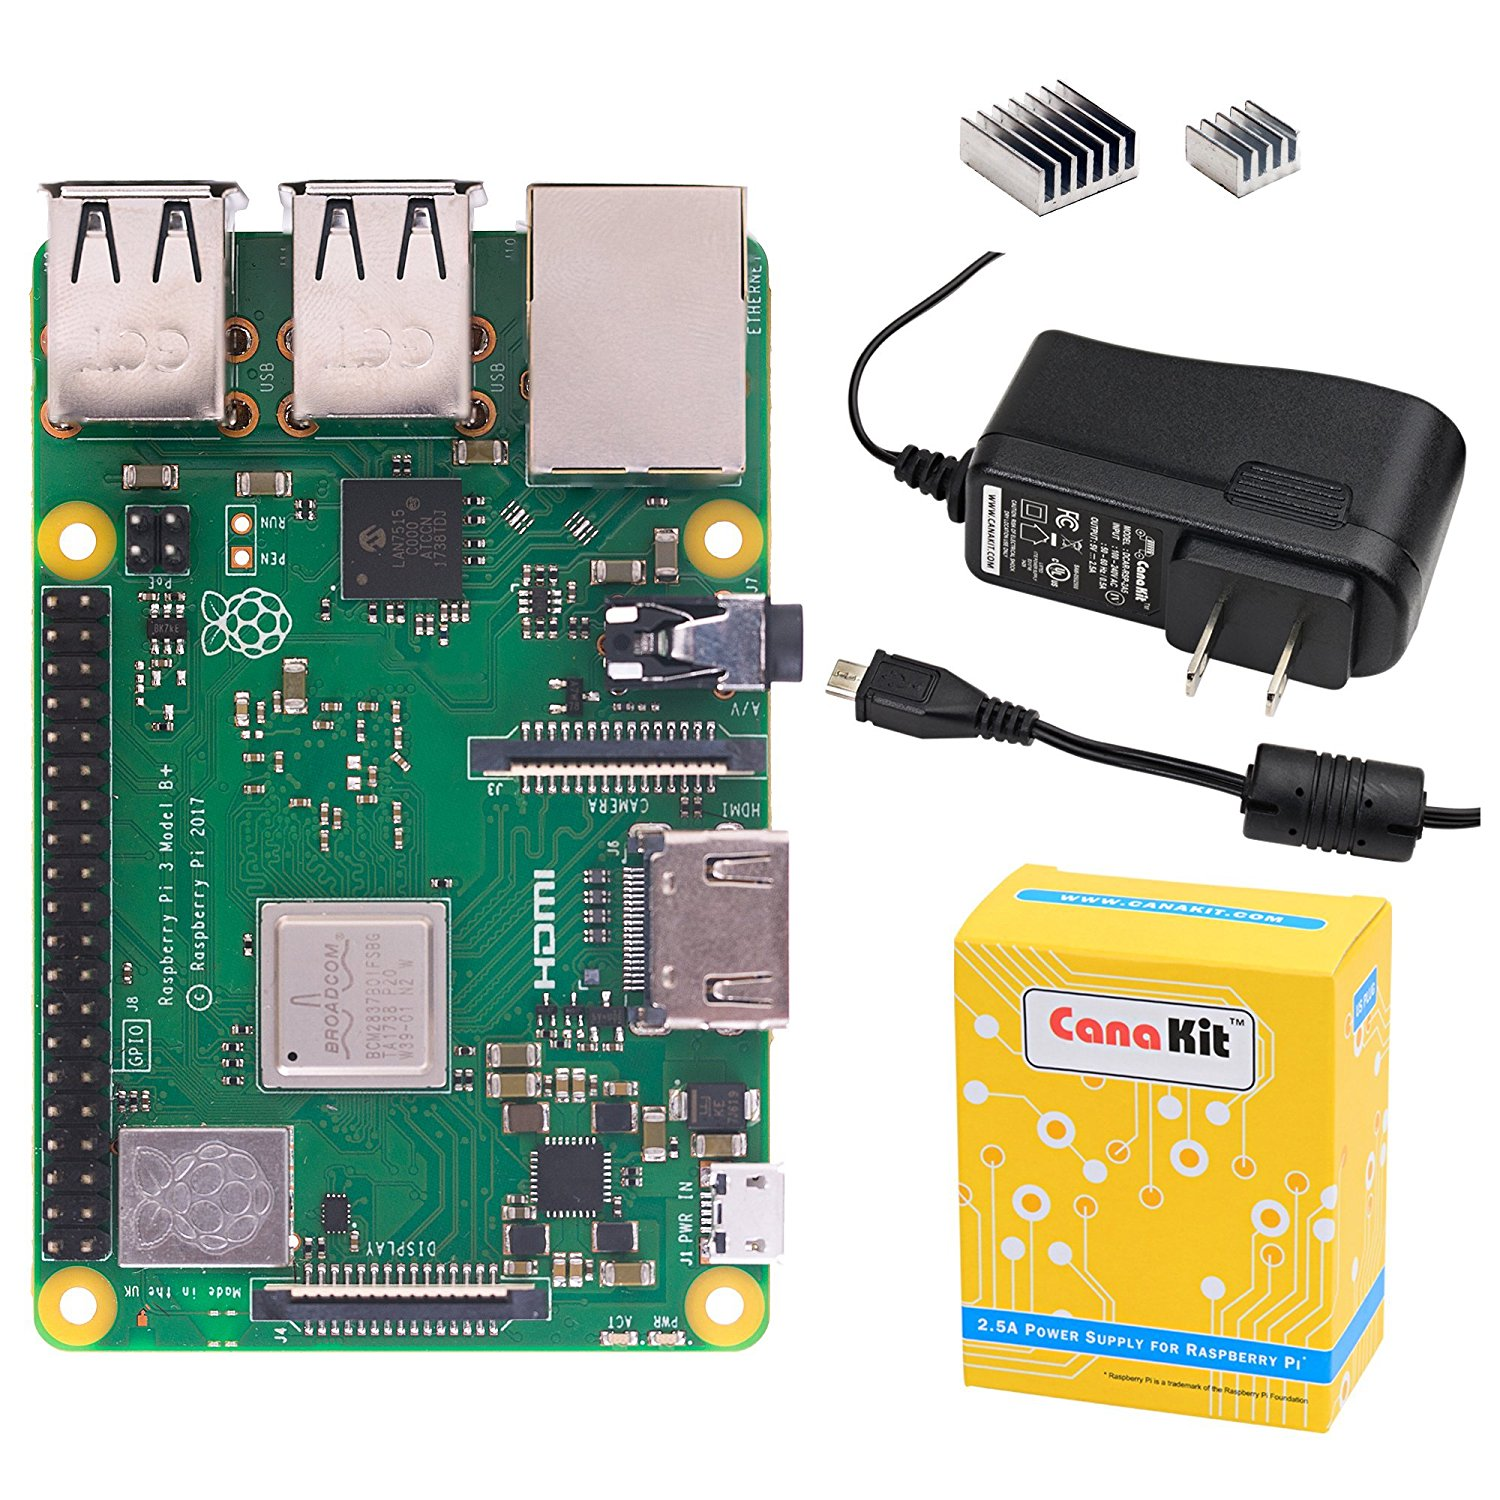 Raspberry Pi 3 Model B+ with 2.5A Power Supply product image